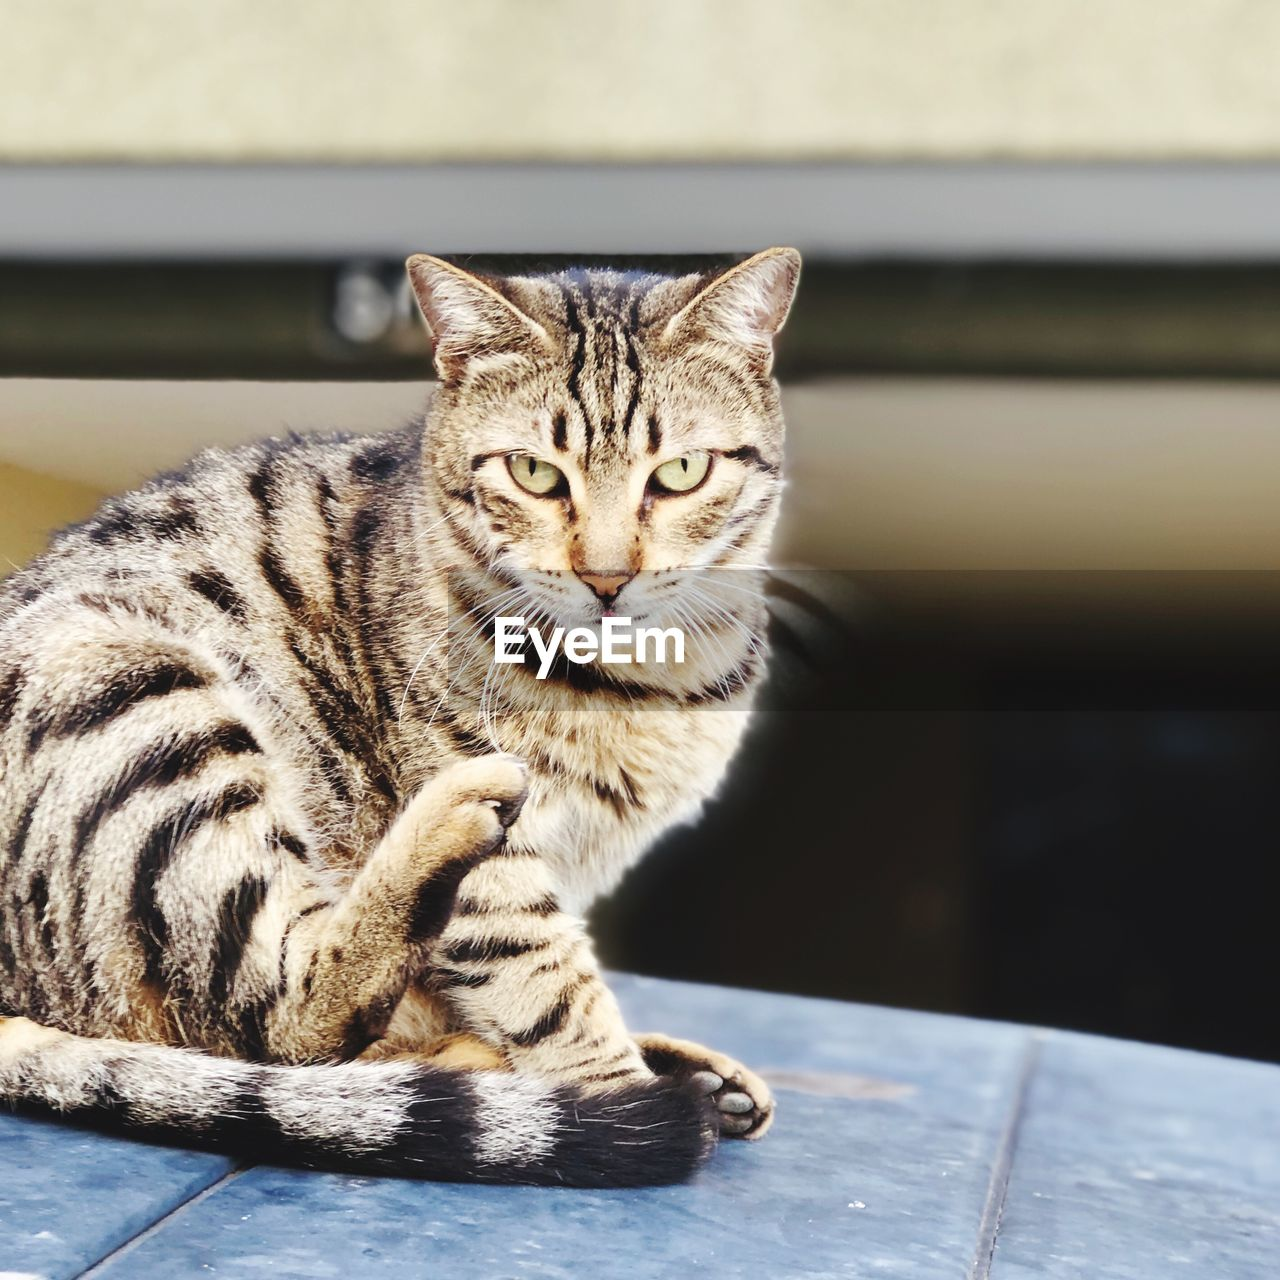 cat, feline, mammal, pets, domestic animals, domestic, one animal, looking at camera, domestic cat, portrait, relaxation, vertebrate, sitting, no people, focus on foreground, whisker, close-up, flooring, tabby